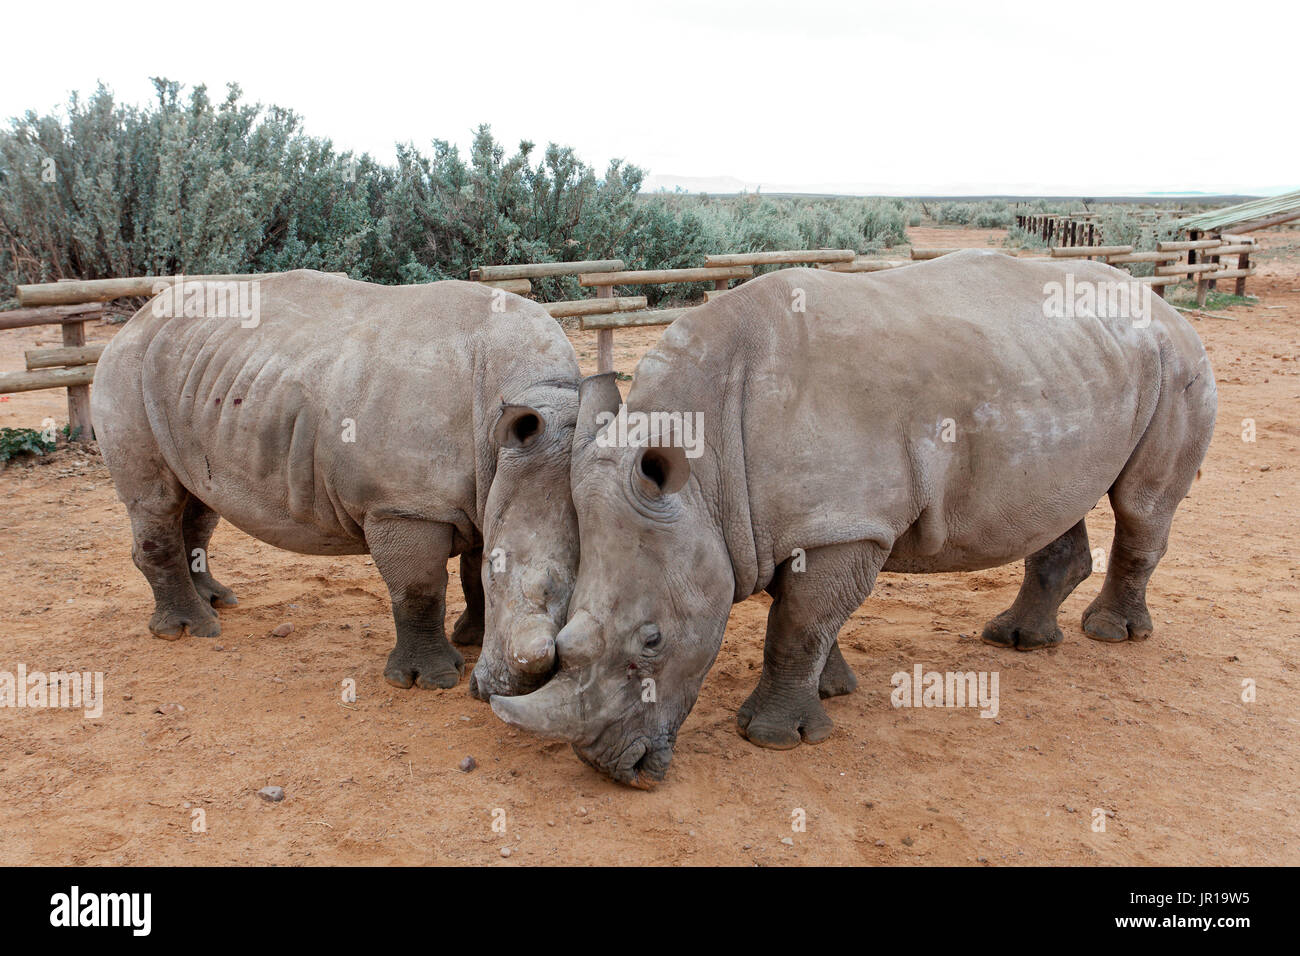 White Rhinoceros (Ceratotherium simum), Karoo Desert, South Africa. Private reserve of Inverdoorn known to recover sick animals and in the field of the fight against poaching in South Africa - Stock Image